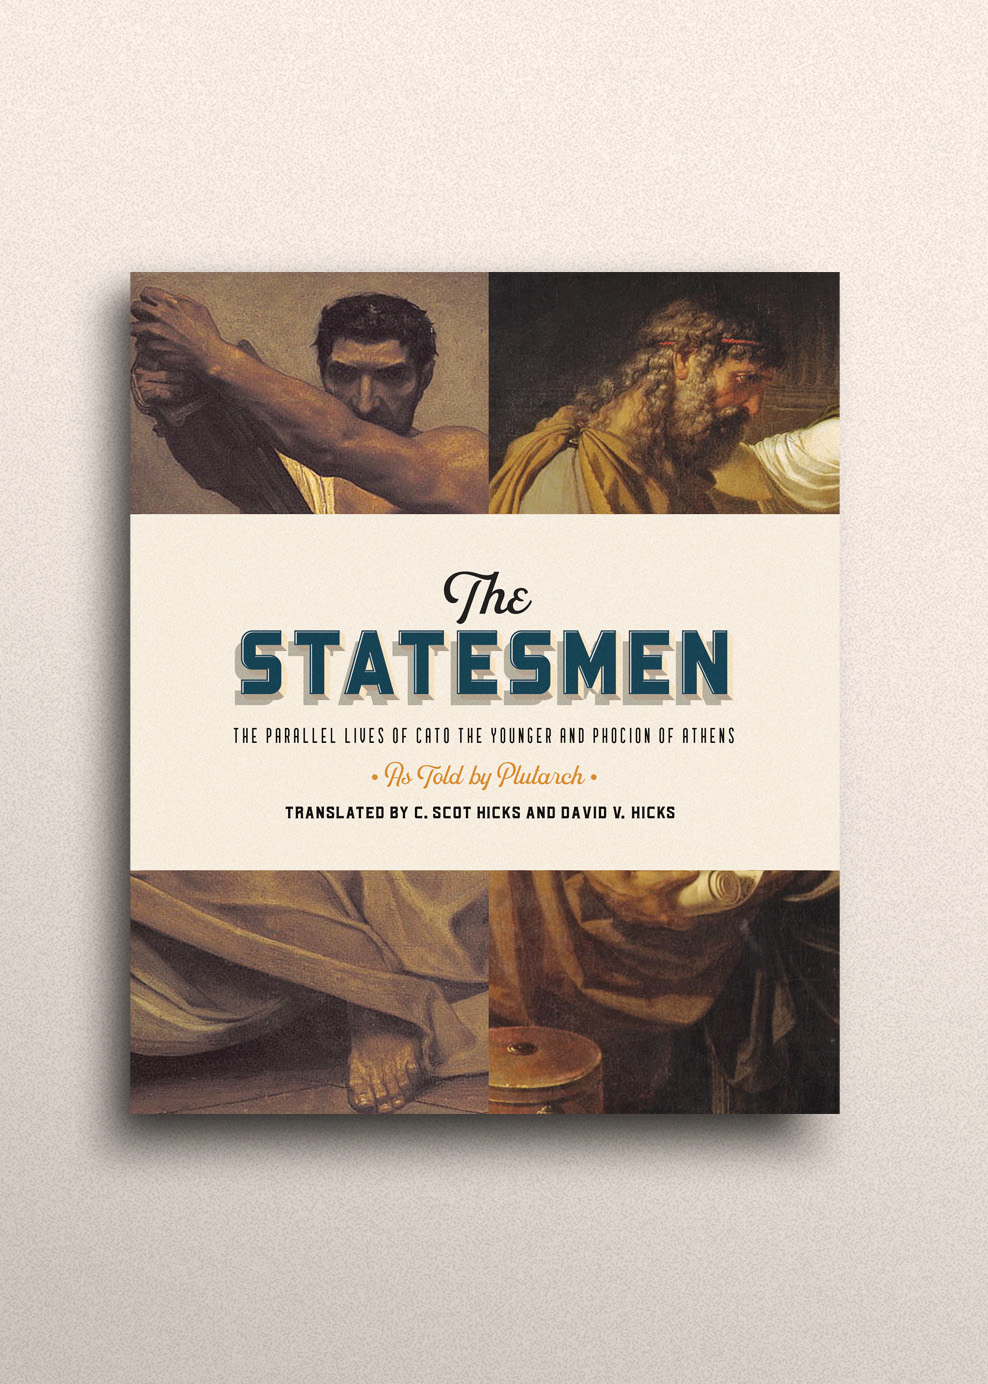 The Statesmen - The Parallel Lives of Cato the Younger and Phocion of Athens